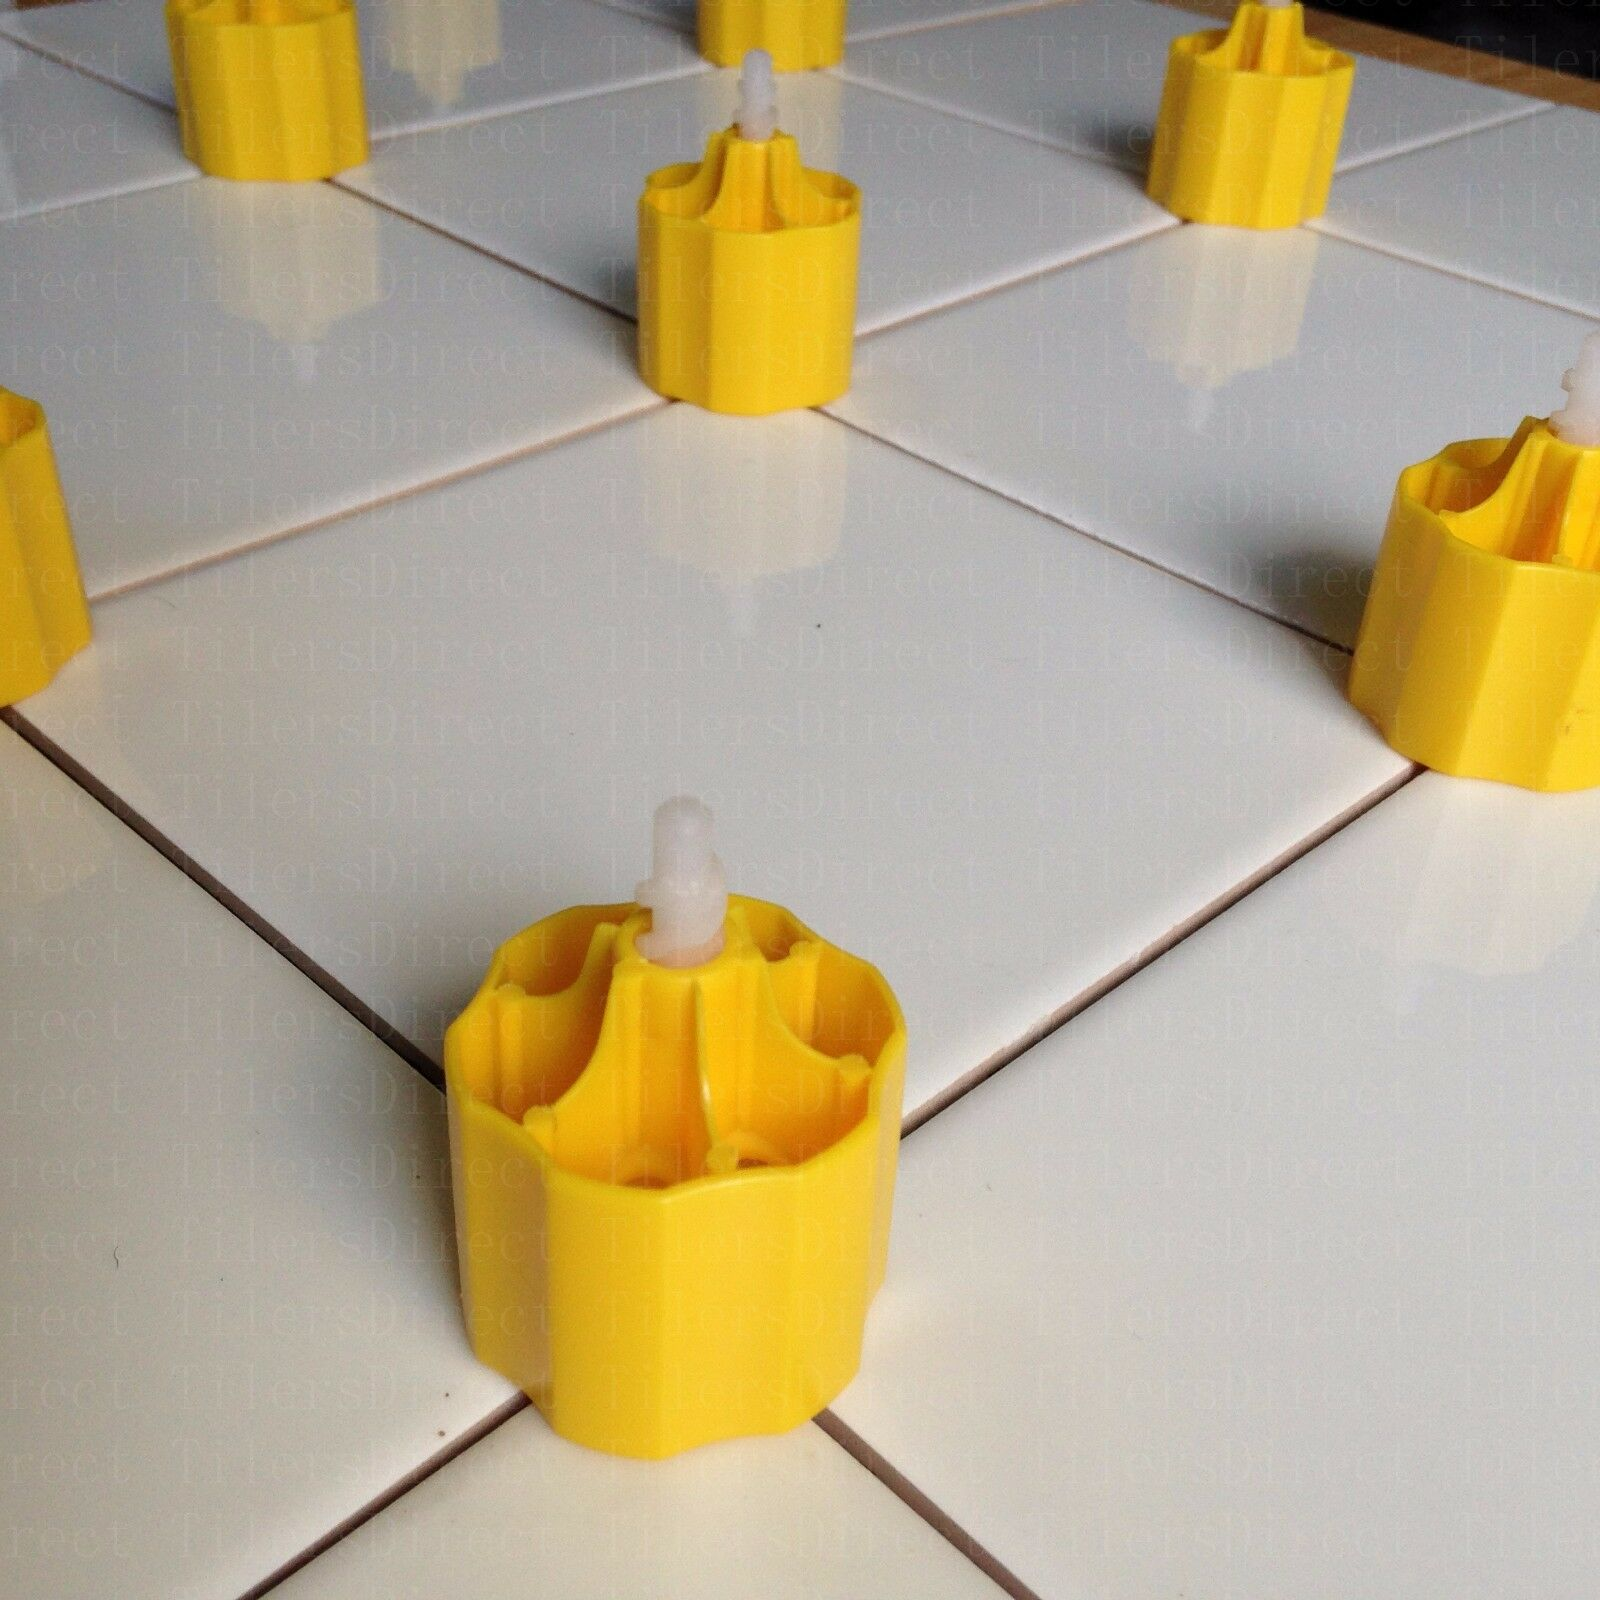 100 Caps+300 Spacers Tile Leveling System Cross Spacer Flooring Lippage Tools